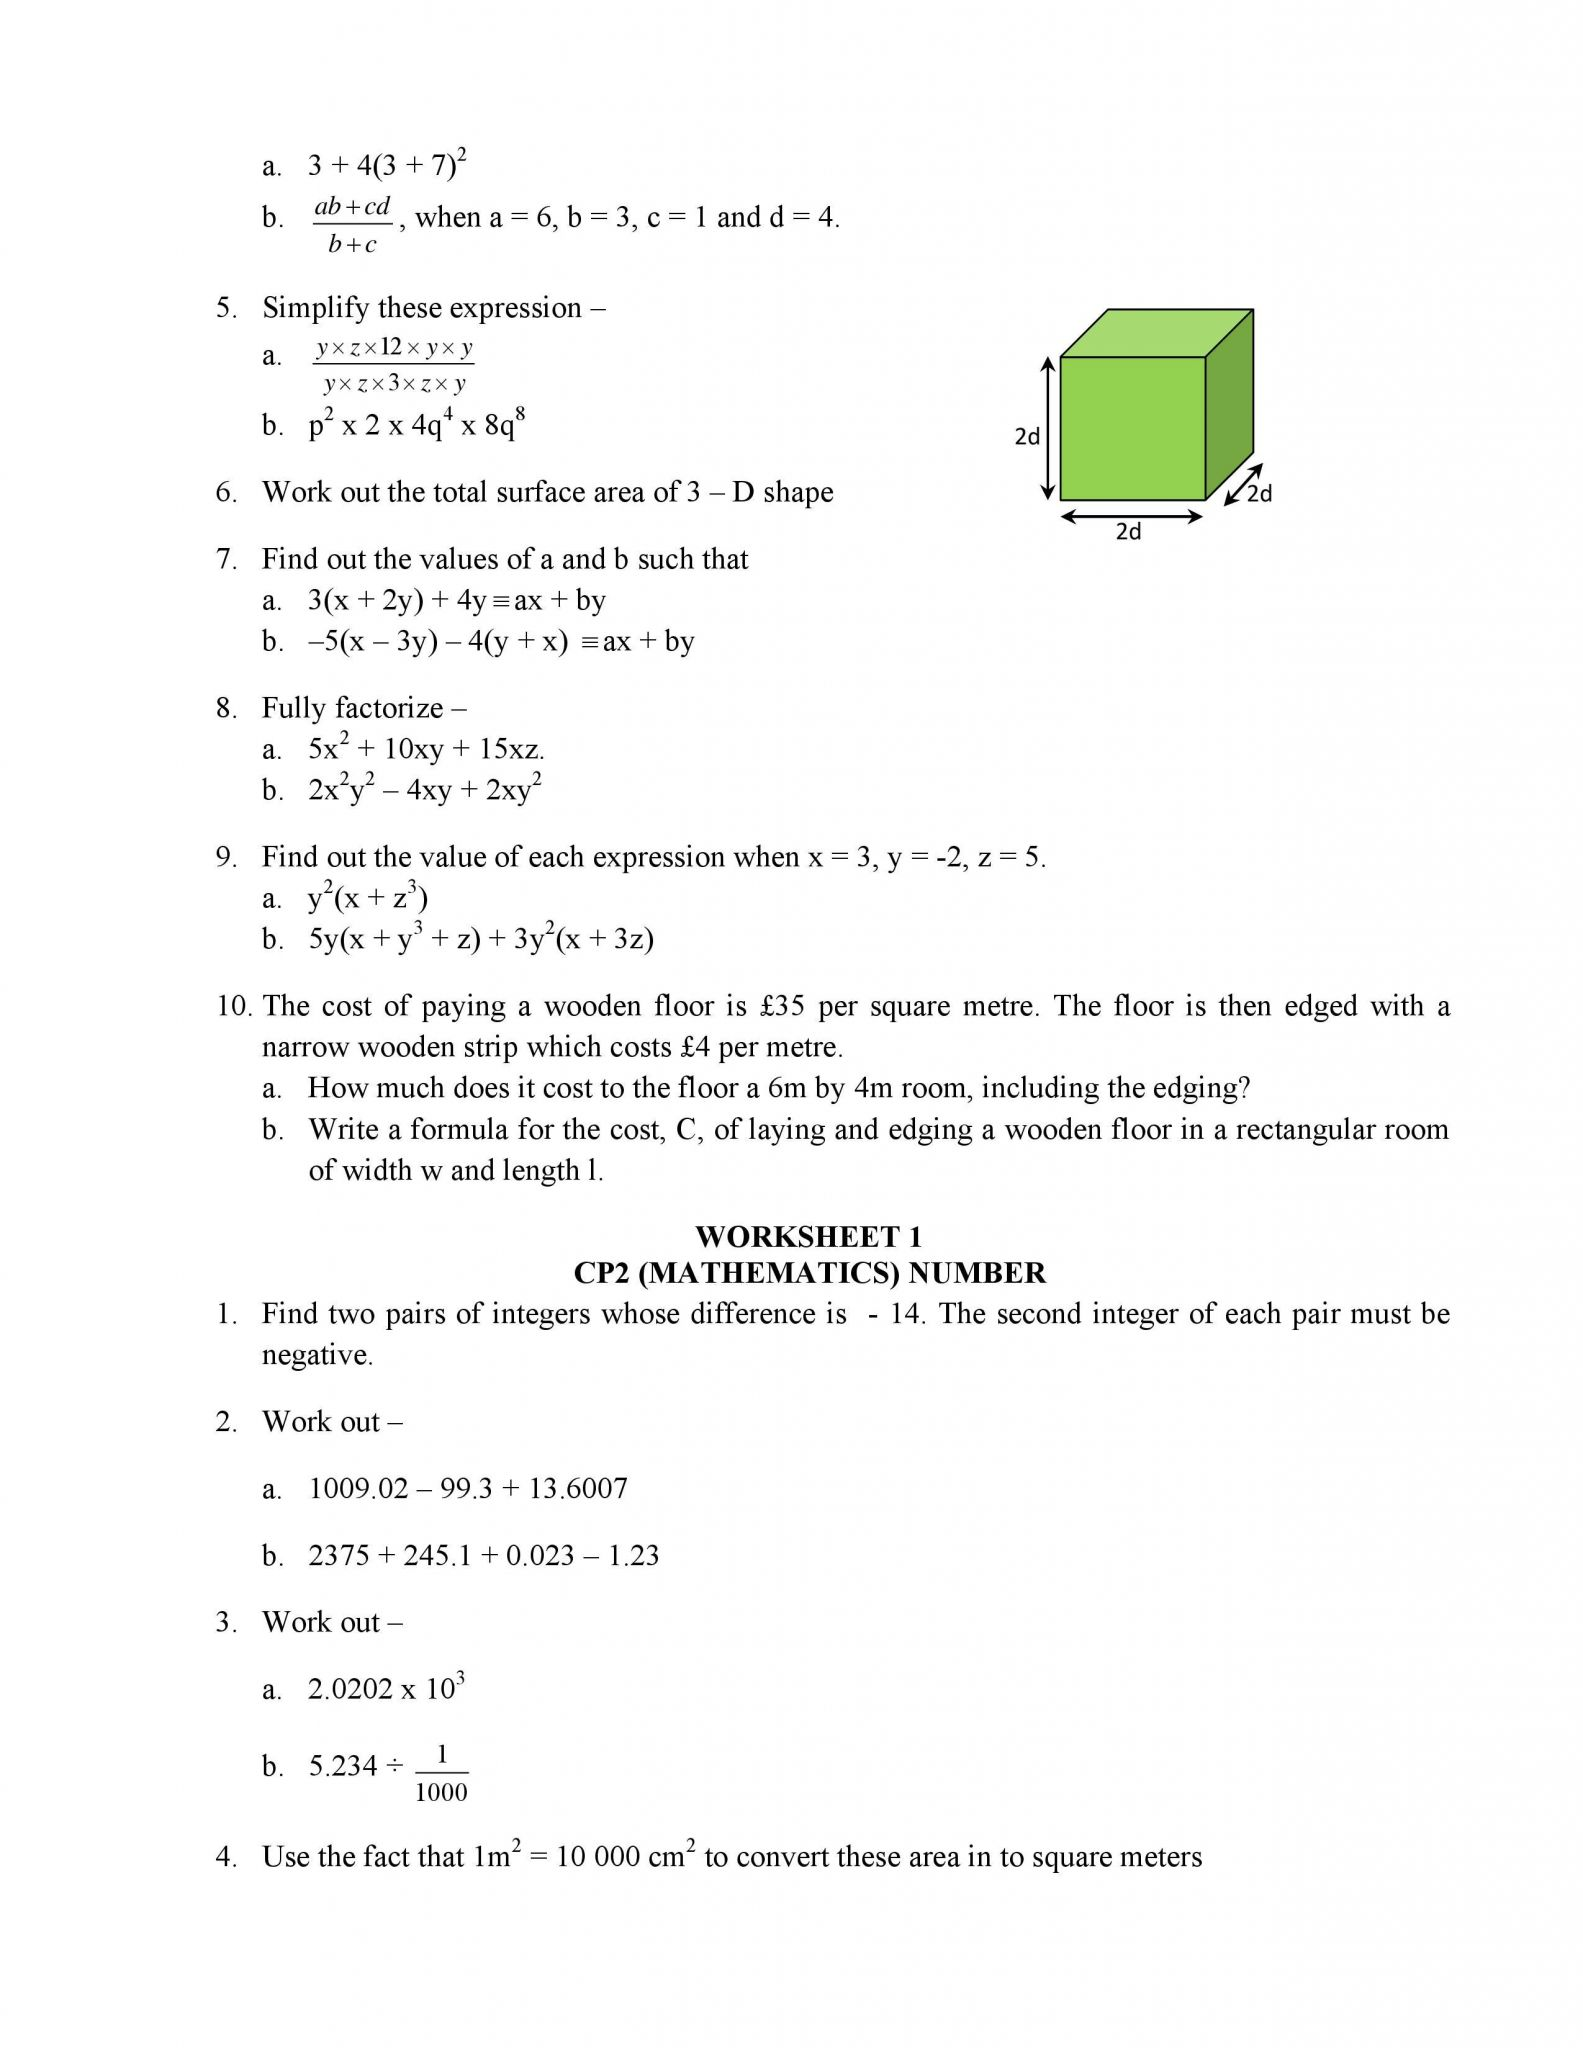 Algebra 1 Worksheet 1 5 Translating Expressions Answer Key